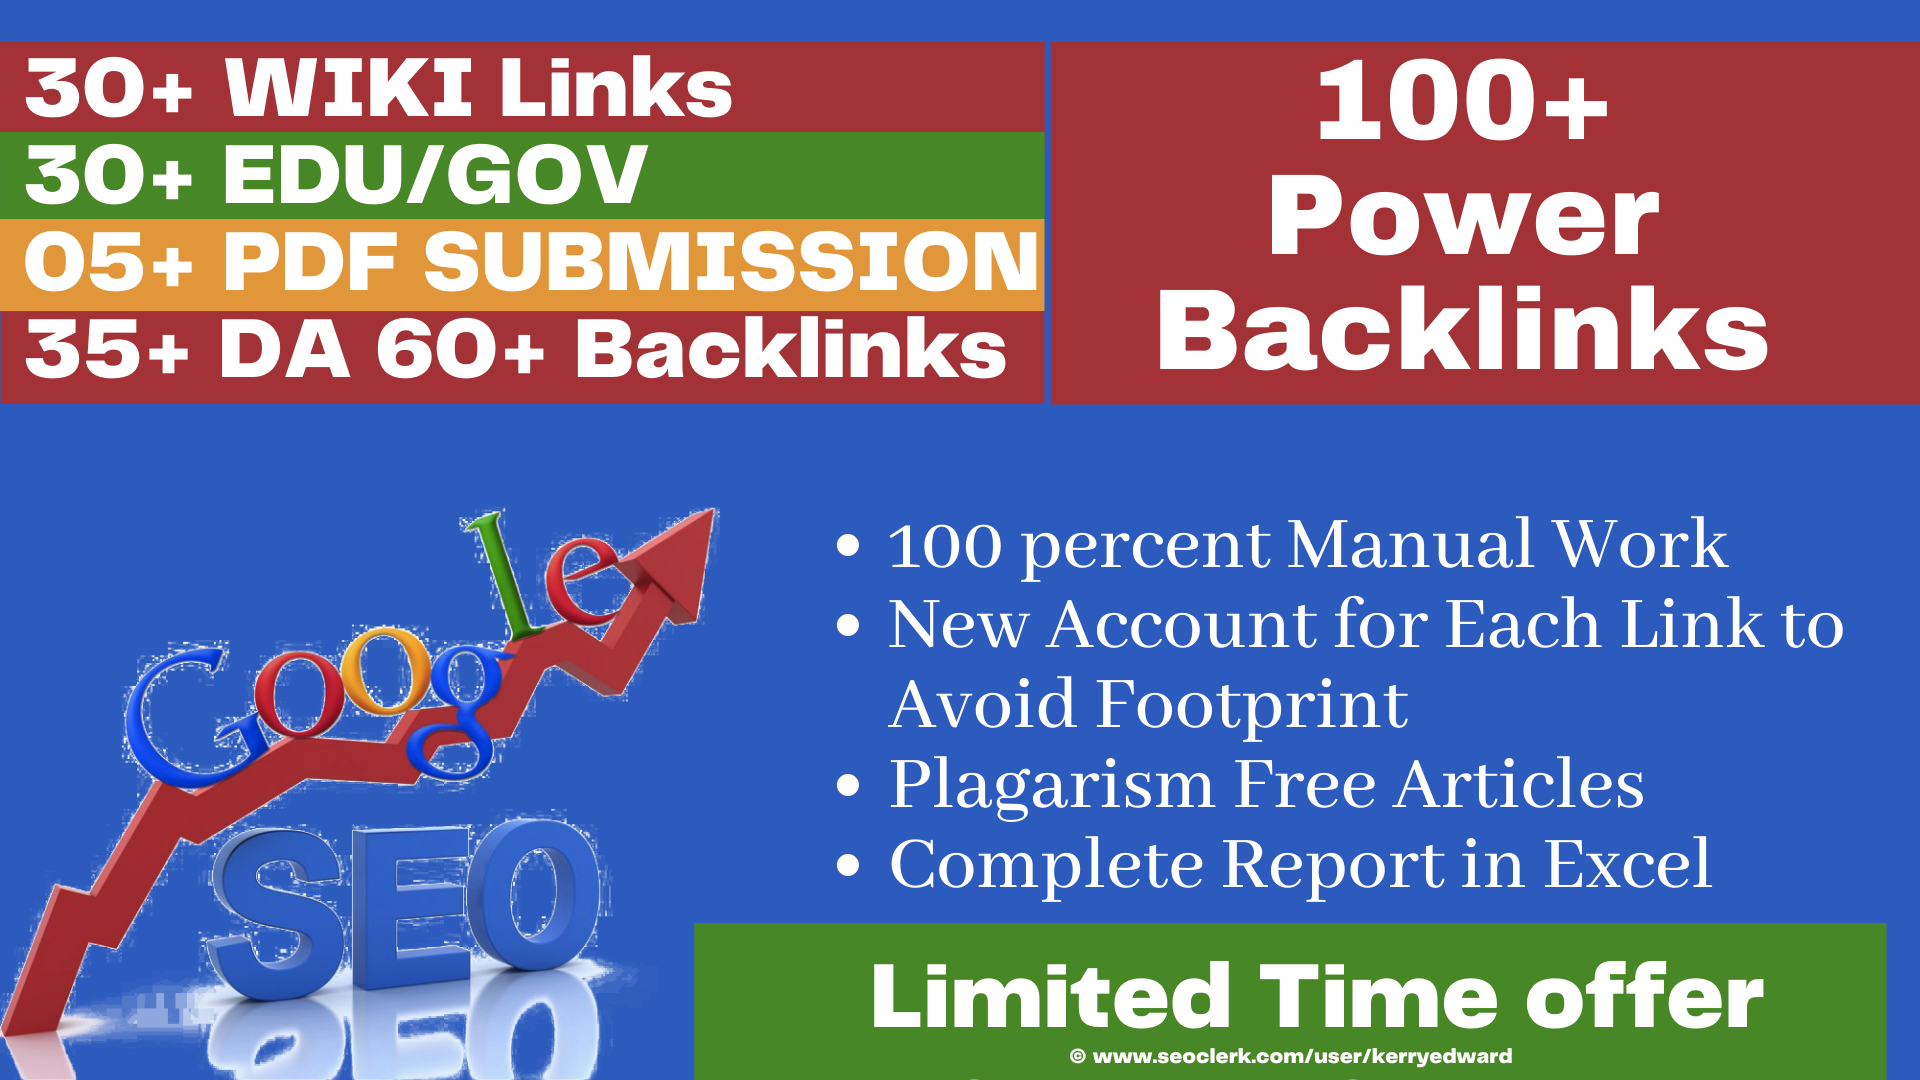 Ran 1st on Google With Our Manual 100+ Power Backlink from DA60+,  Edu/Gov,  Wiki,  PDF submission